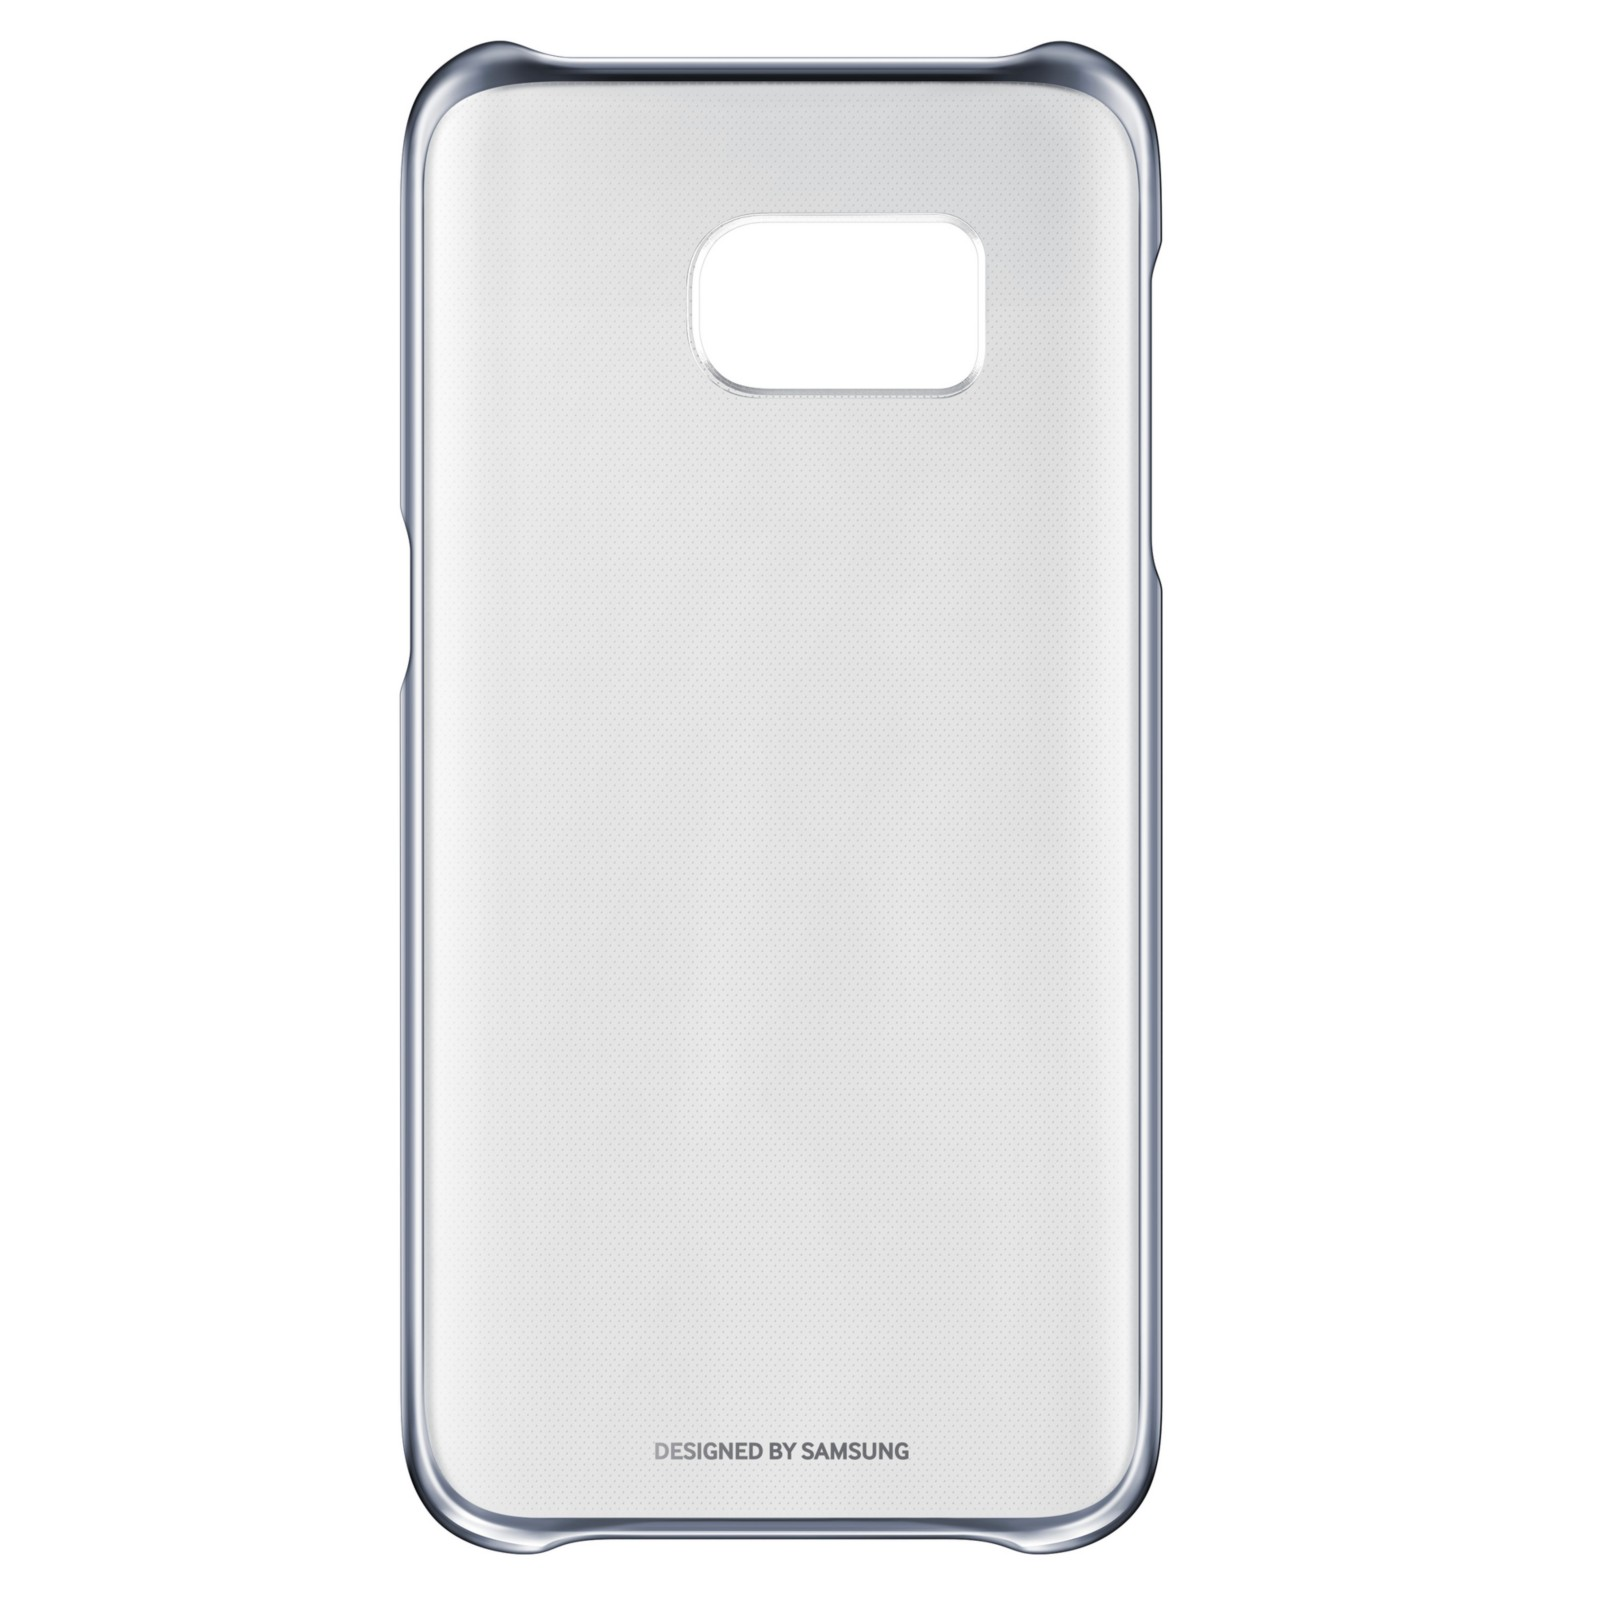 Samsung Clear View Cover for Galaxy S7 Smartphone